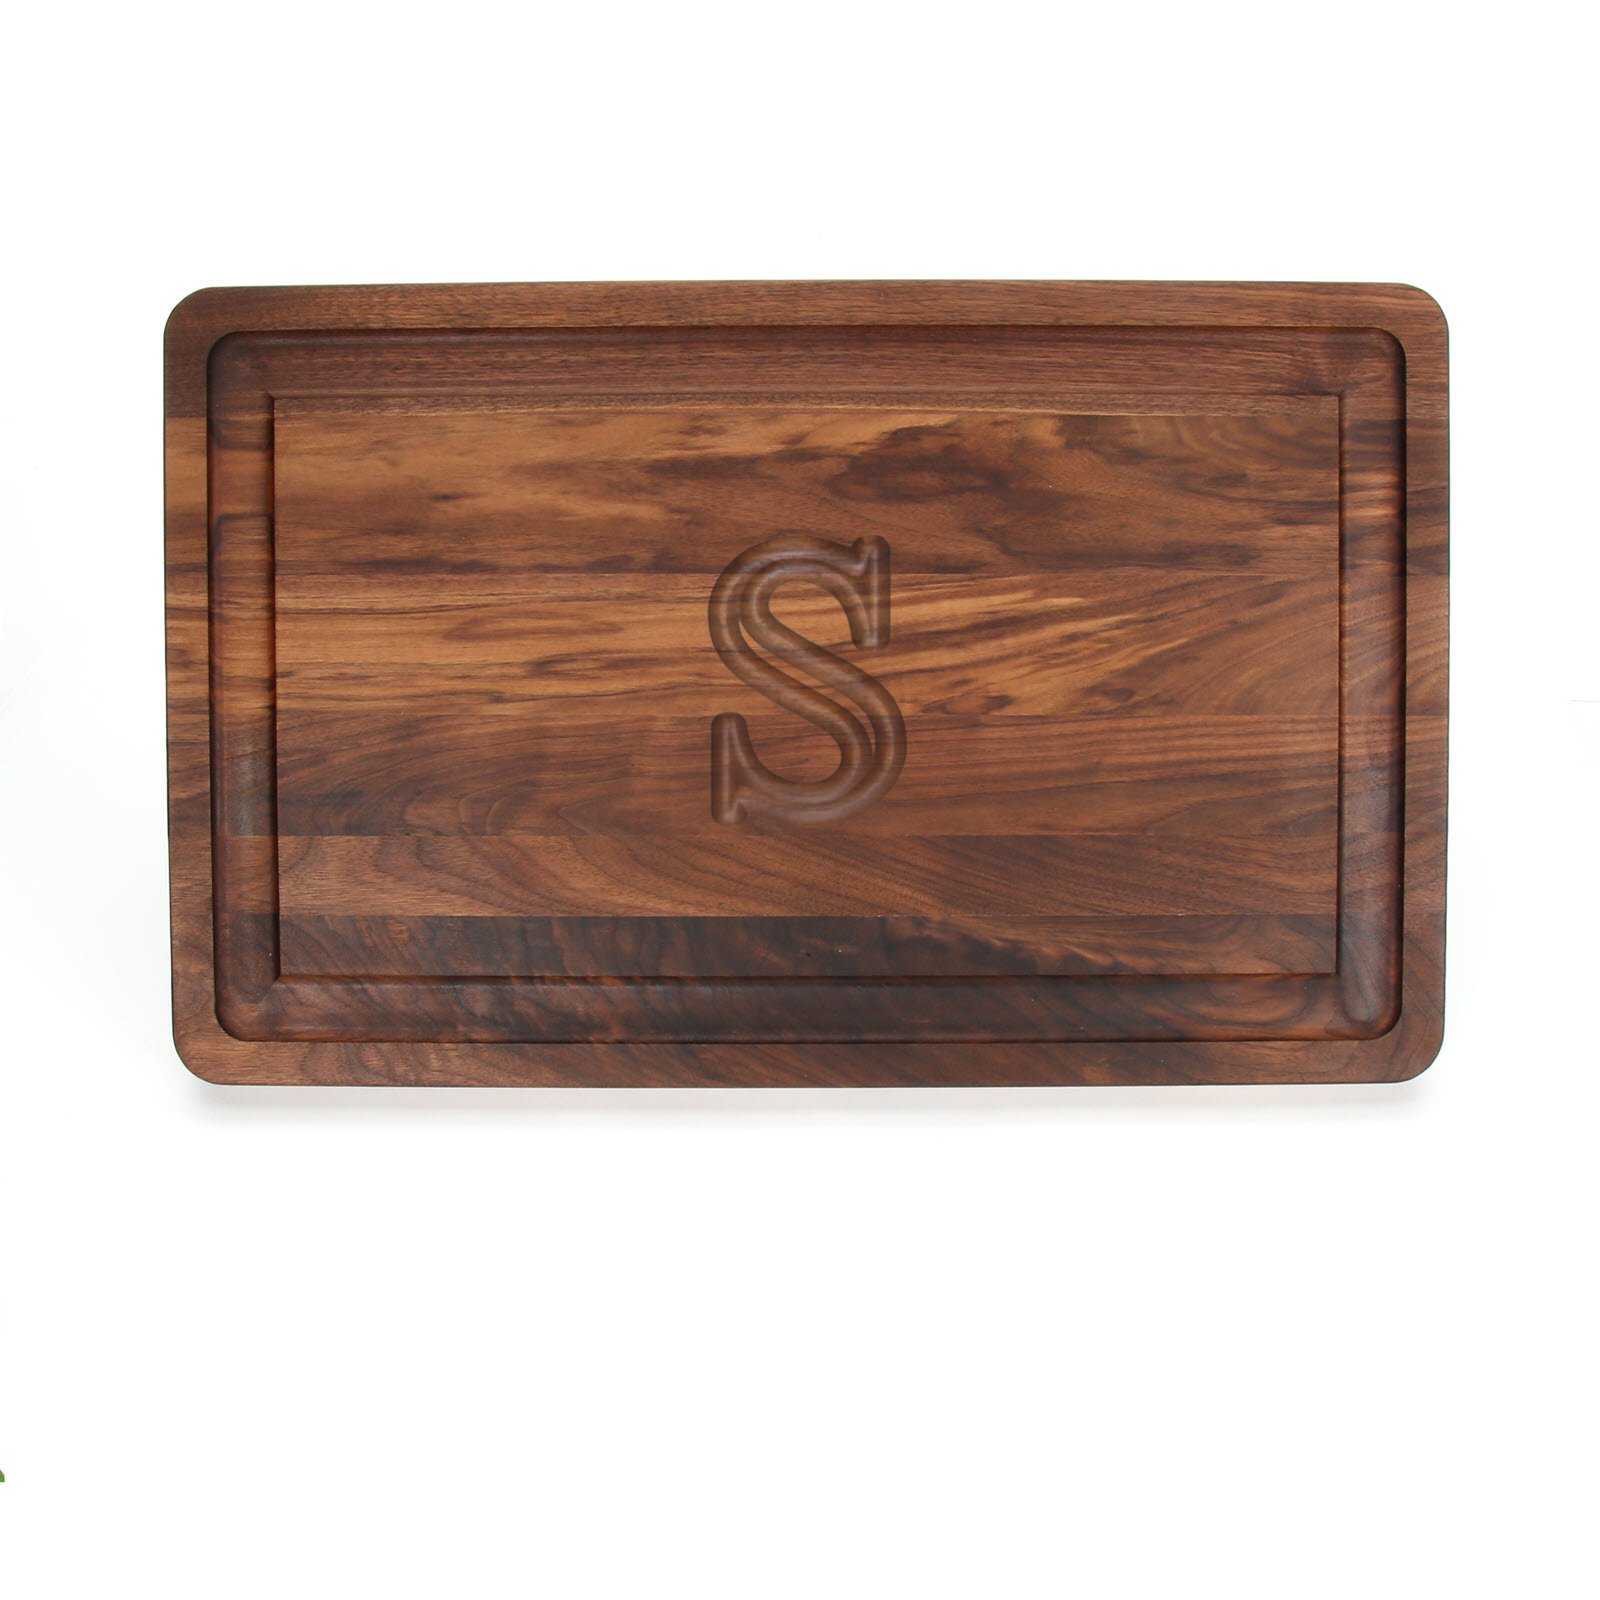 BigWood Boards W220-S Thick Carving Board, 15-Inch by 24-Inch by 1.25-Inch, Monogrammed ''S'', Walnut by BigWood Boards